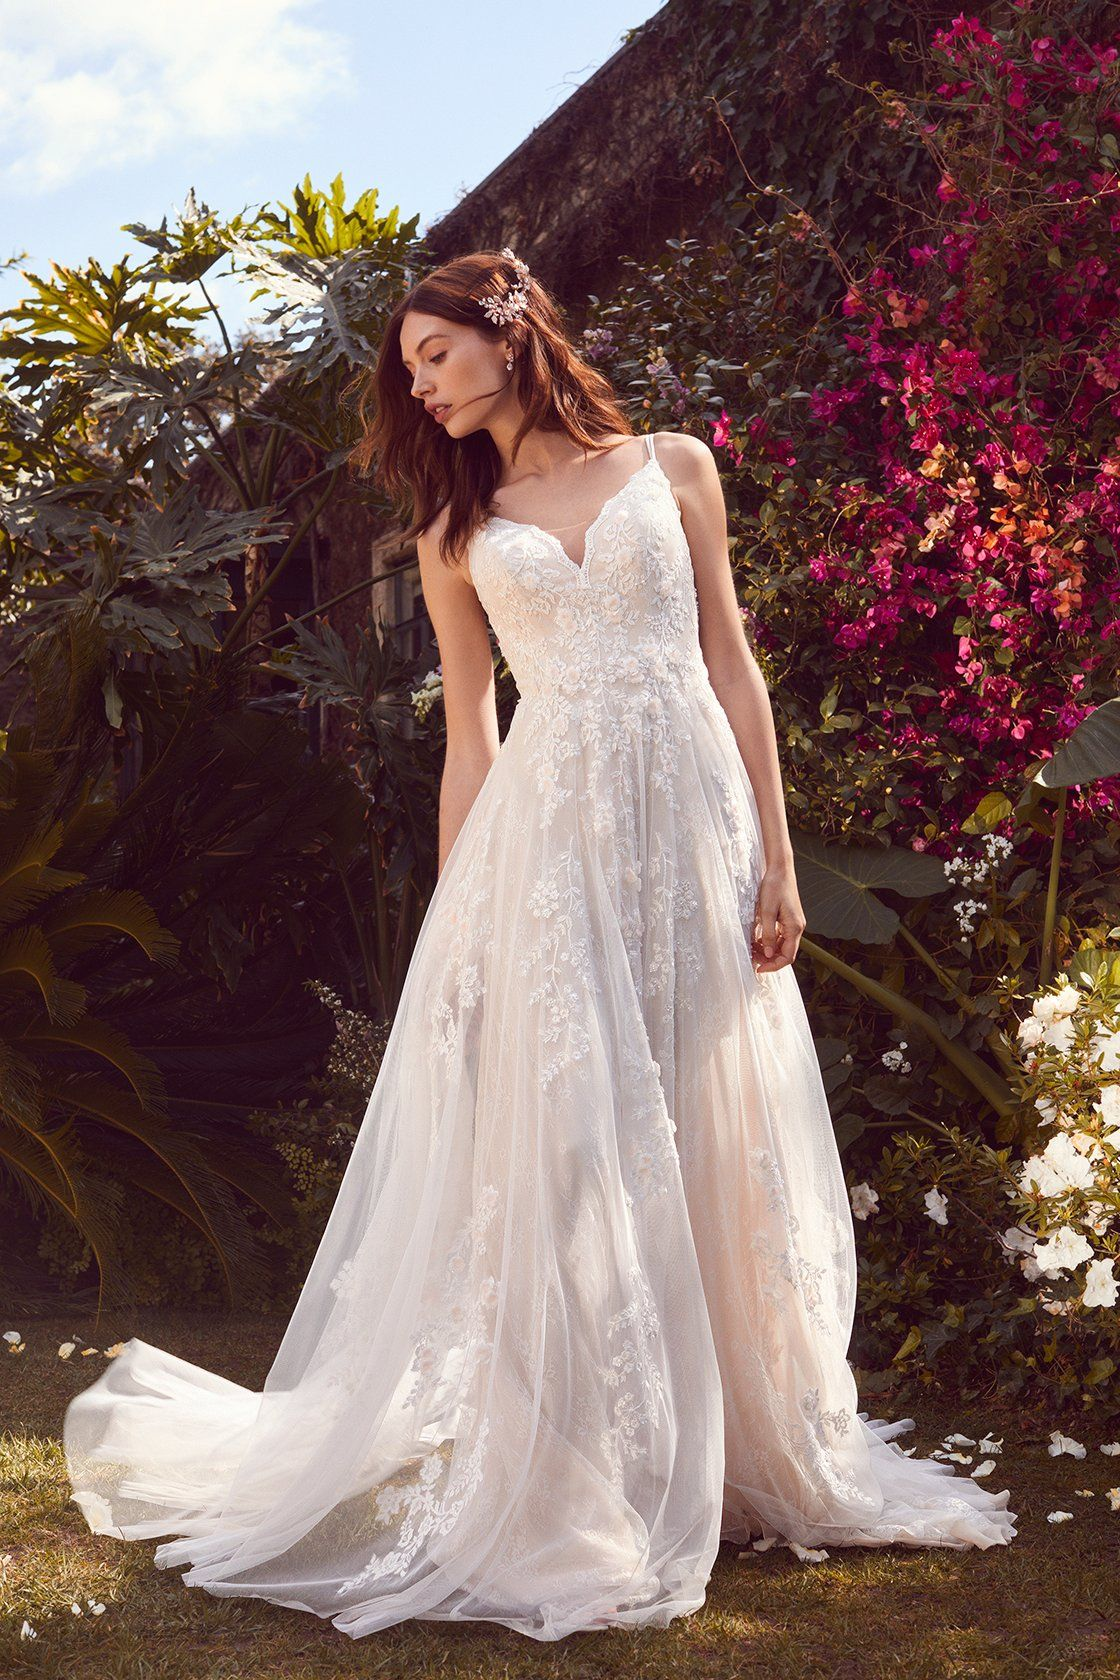 David bridal wedding dress  We are dreaming about this romantic aline wedding dress at an